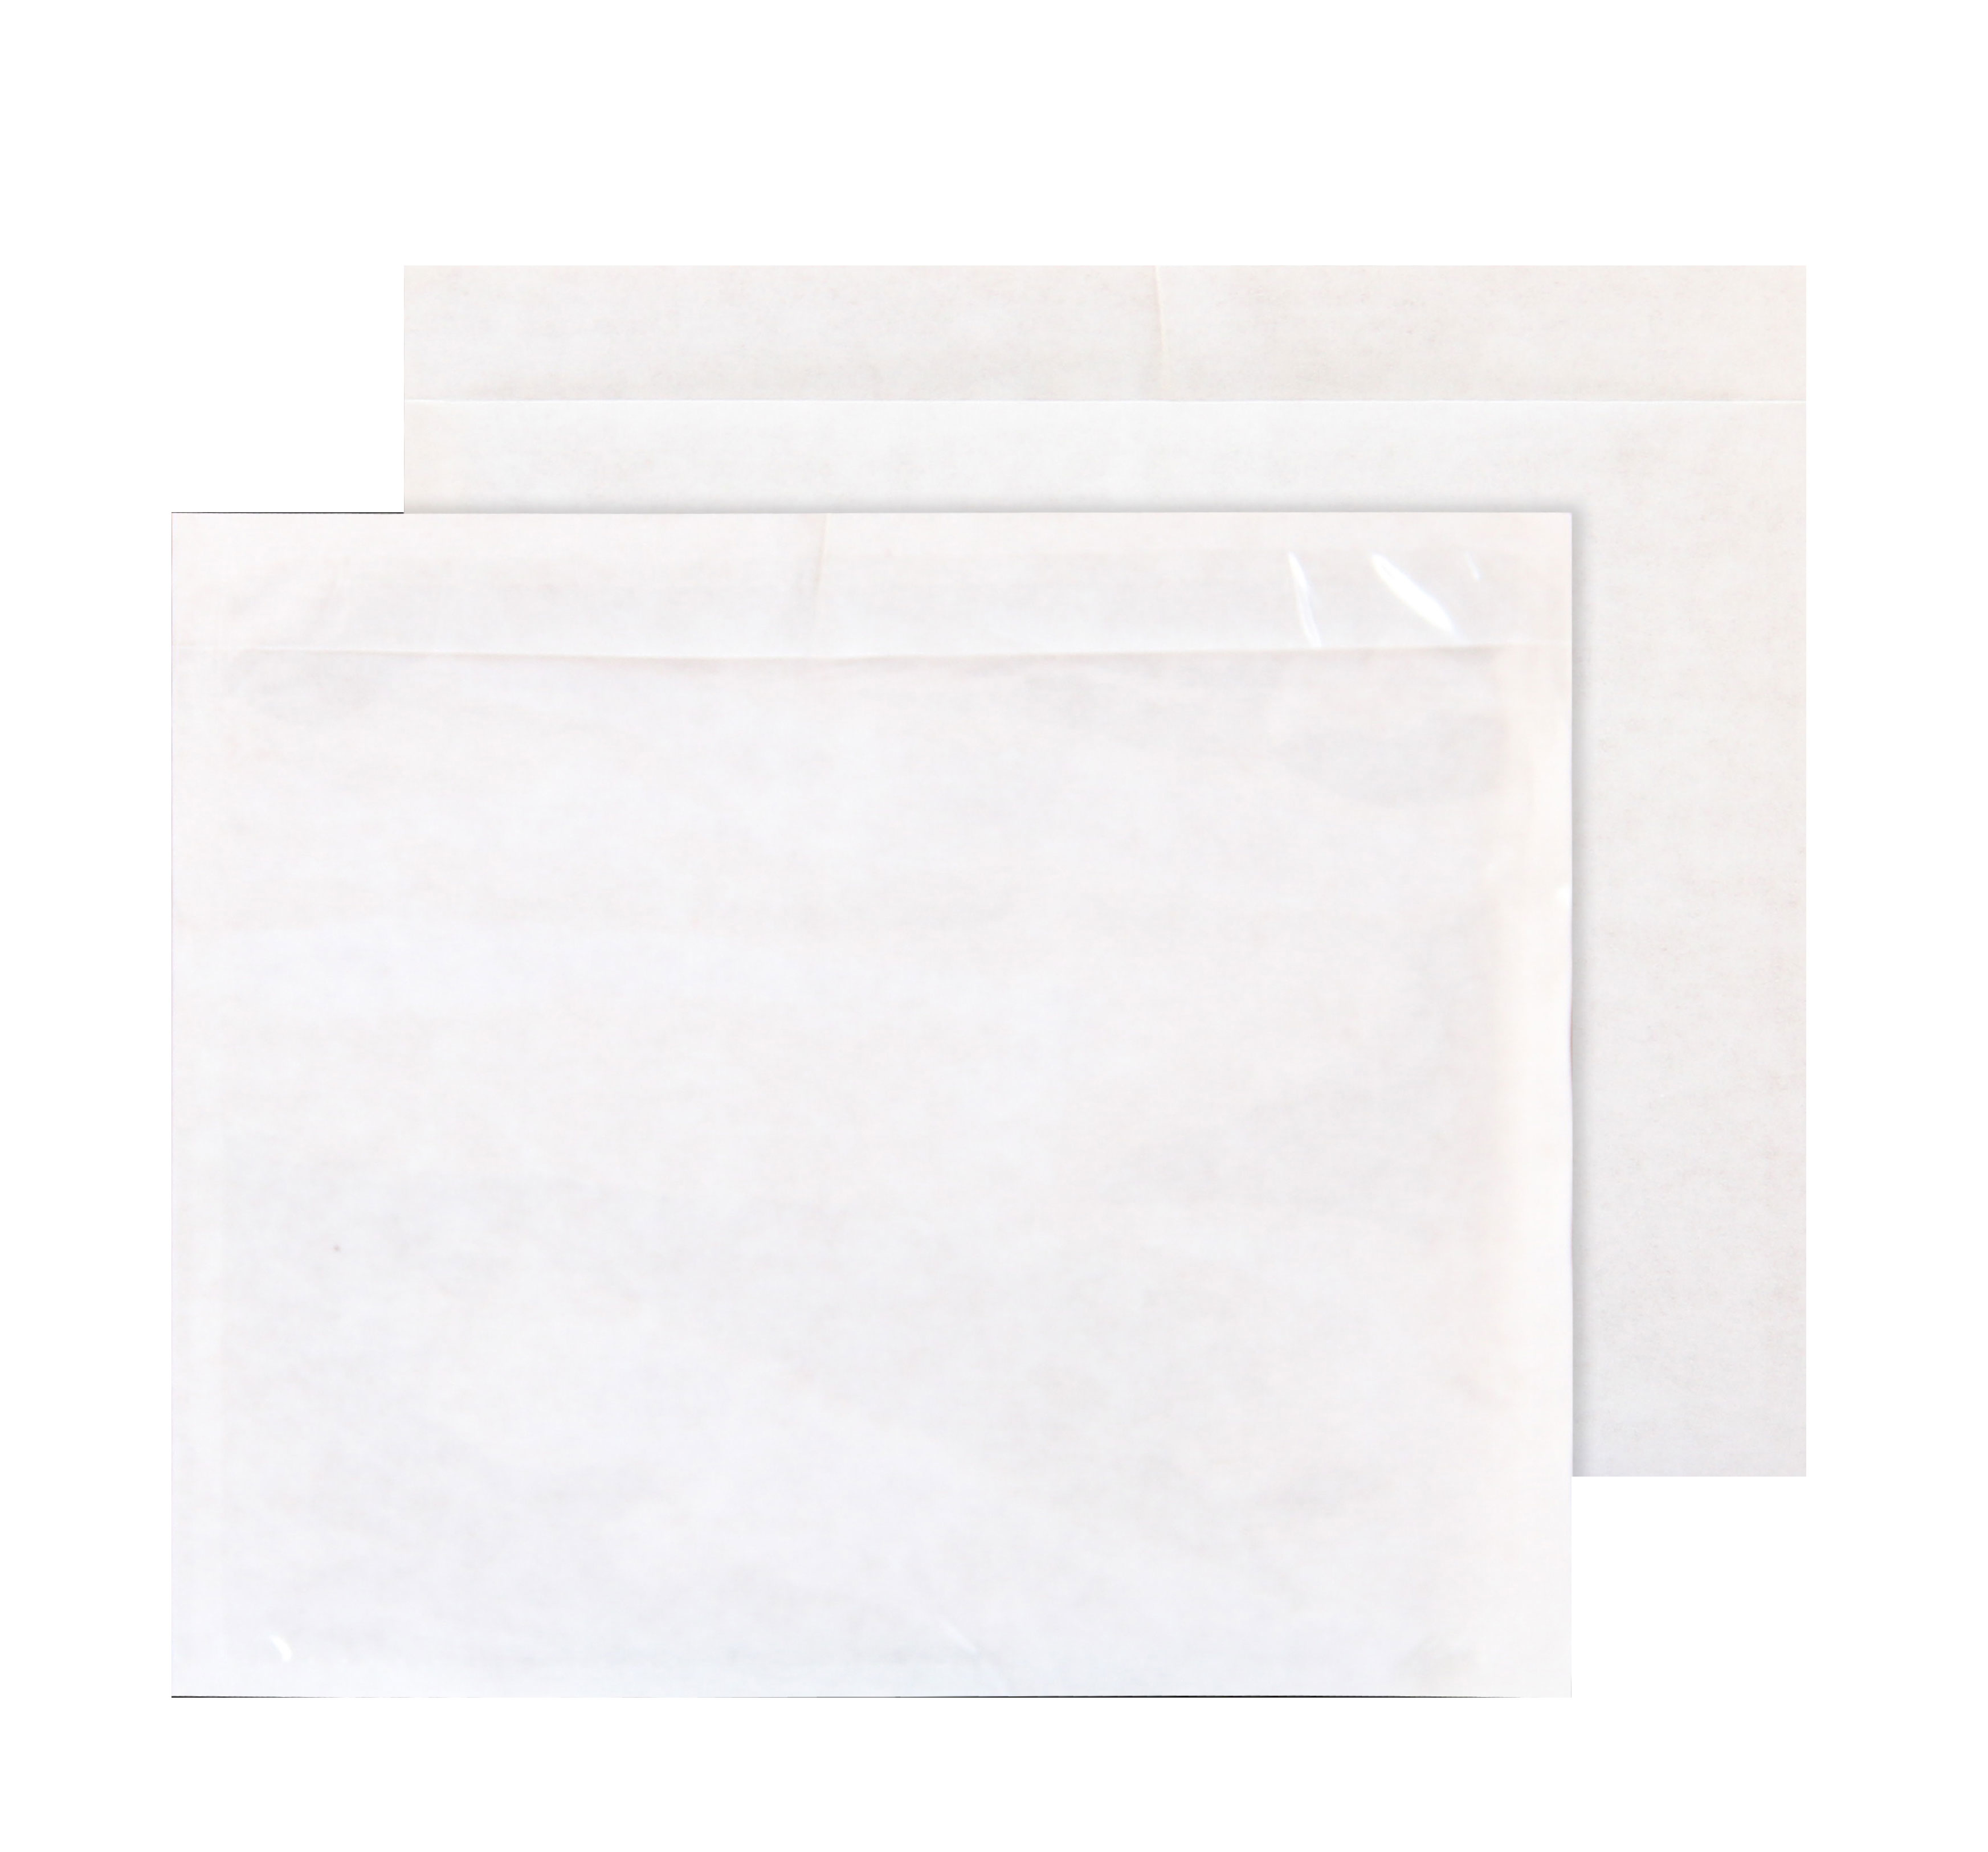 blake envelopes Blake A7 123x111mm Plain Document Enclosed Wallet Pk1000 Pde10 - AD01